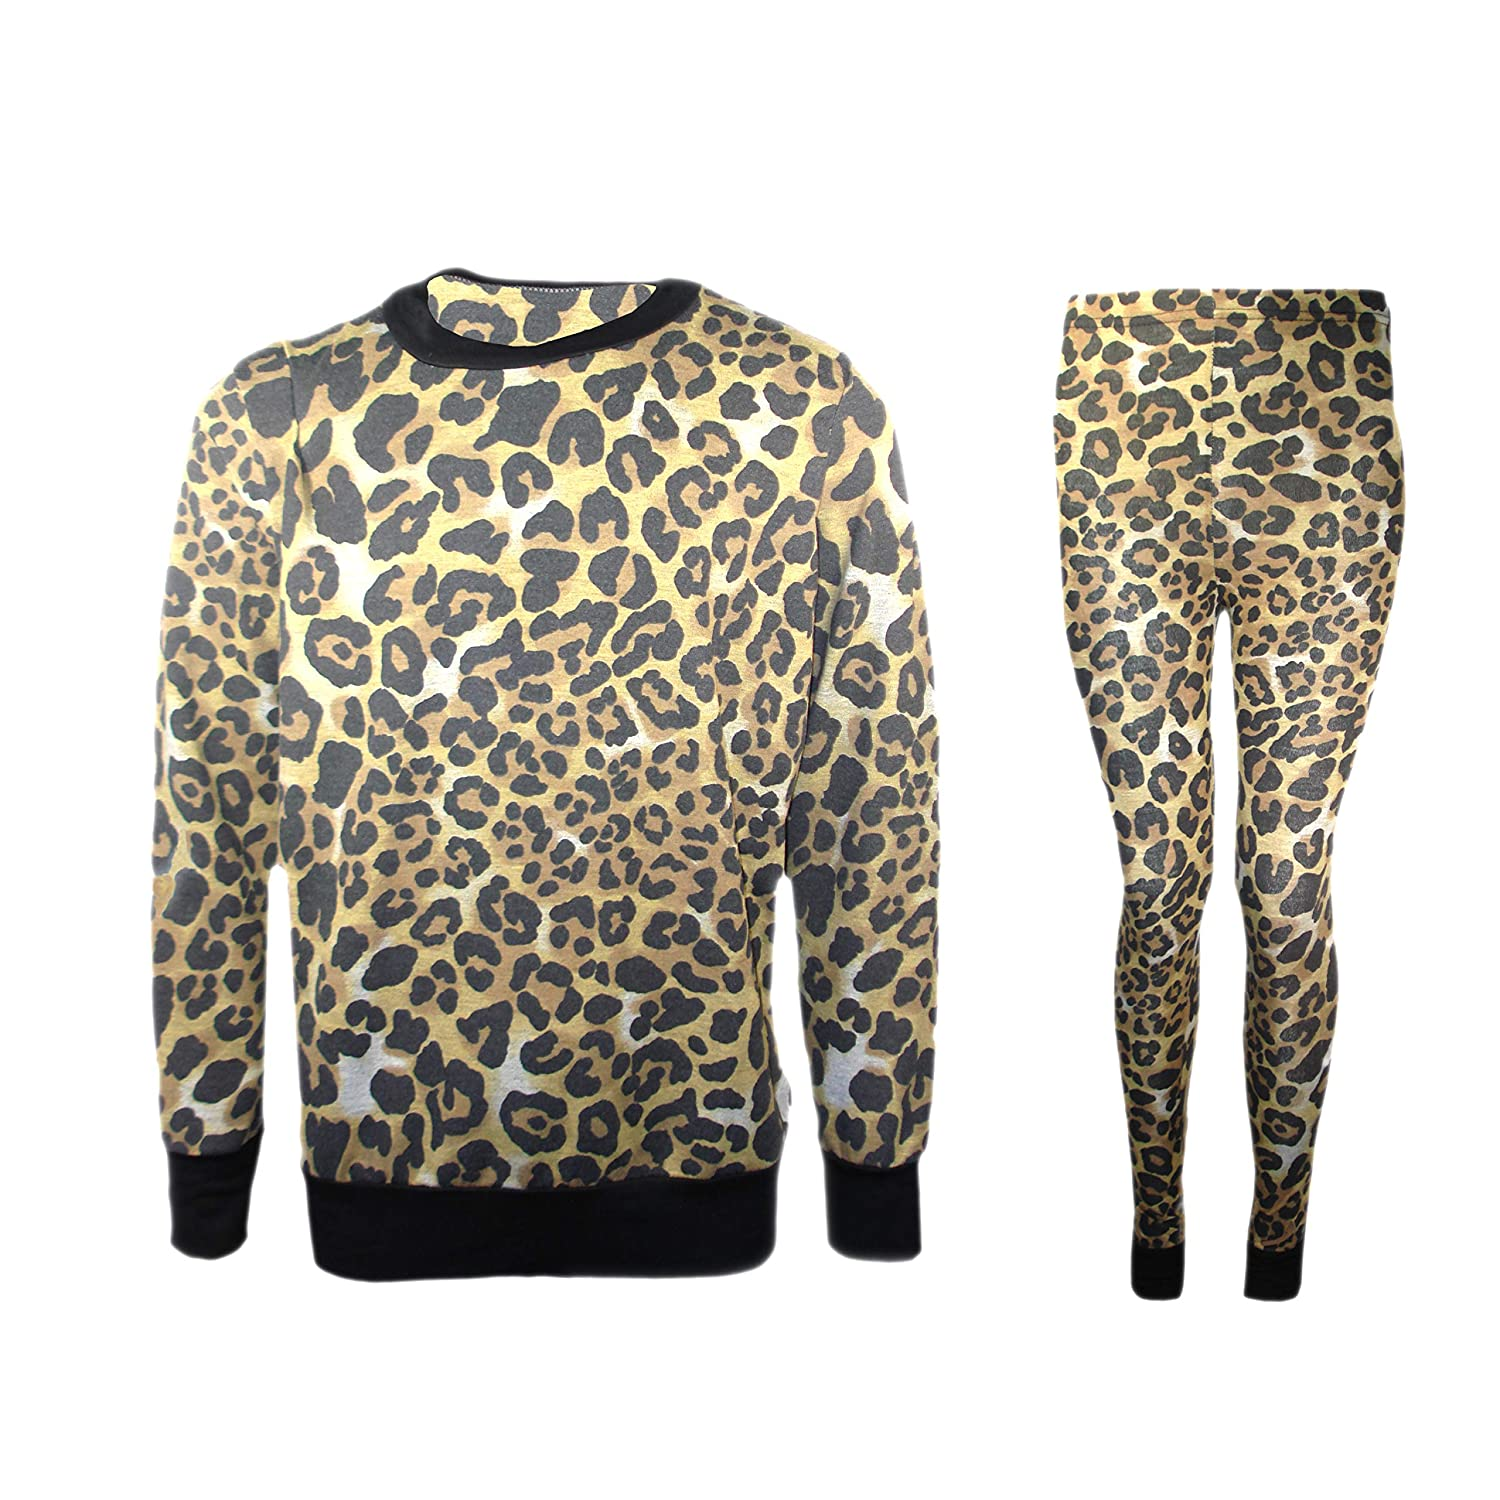 Kids Girls Leopard Print T Shirt Top /& Leopard Legging Outfit Set Age 2-13 Years